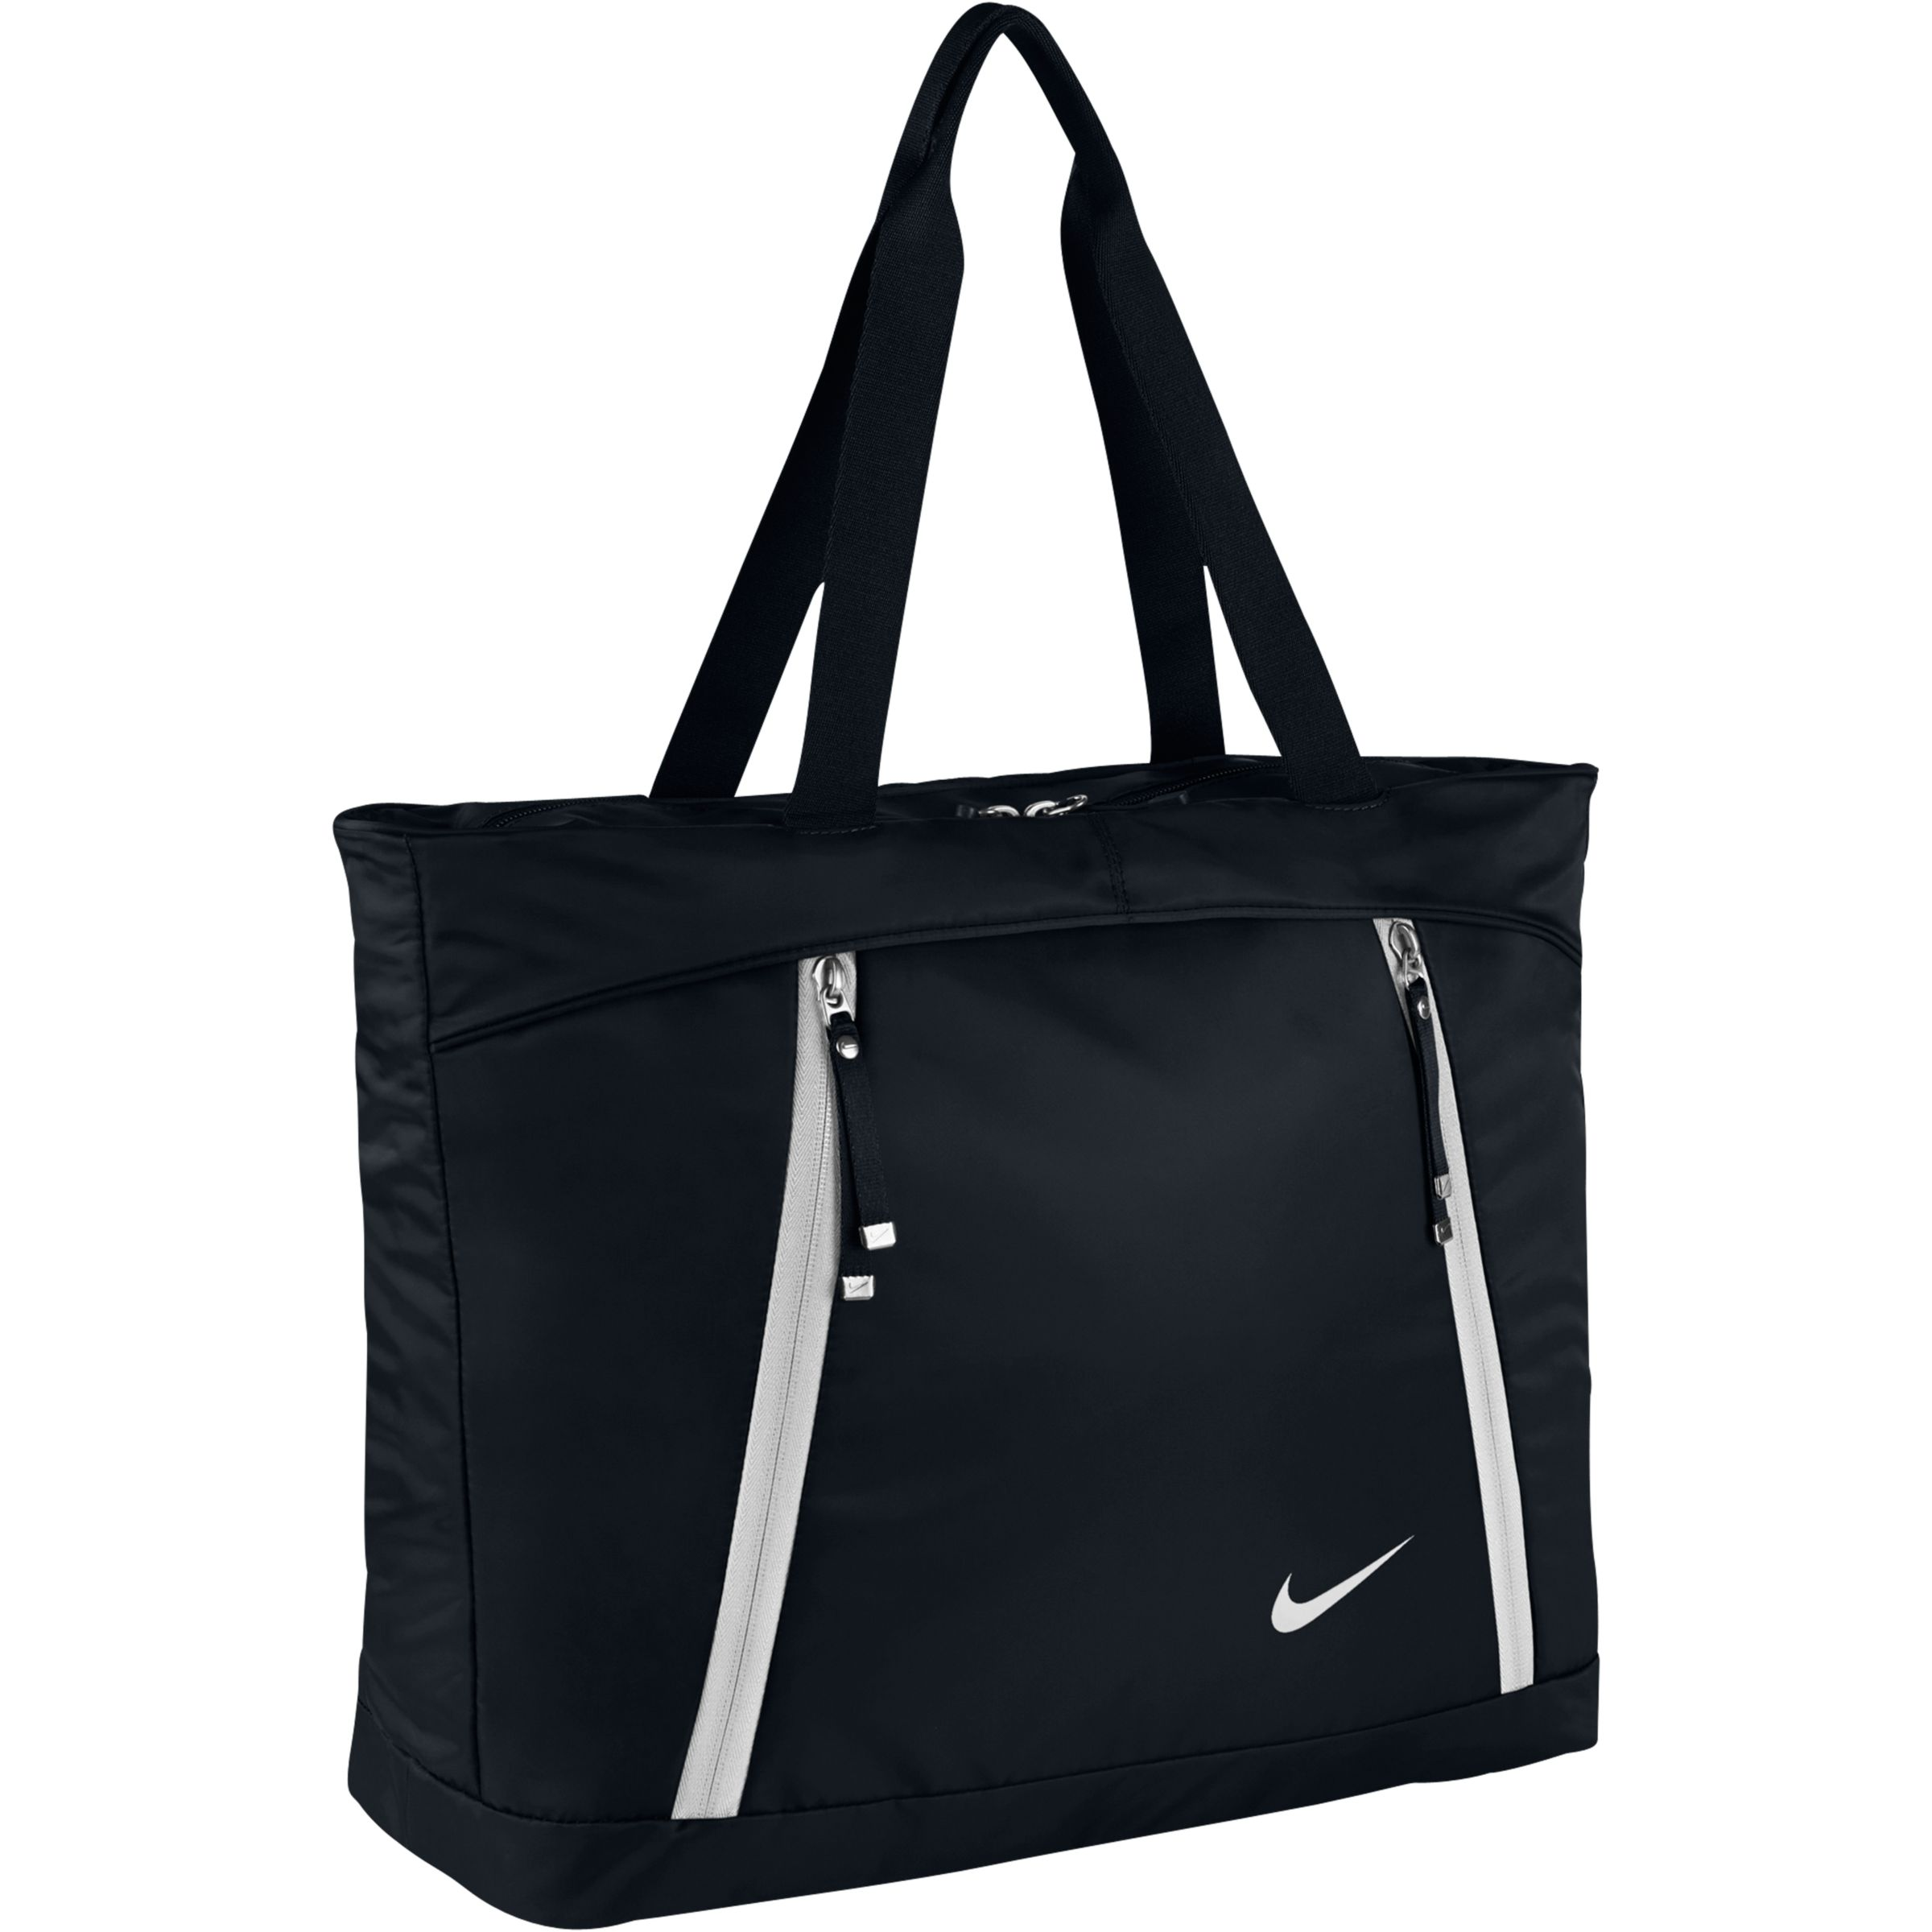 b374018d0aab Nike Auralux Training Tote Bag